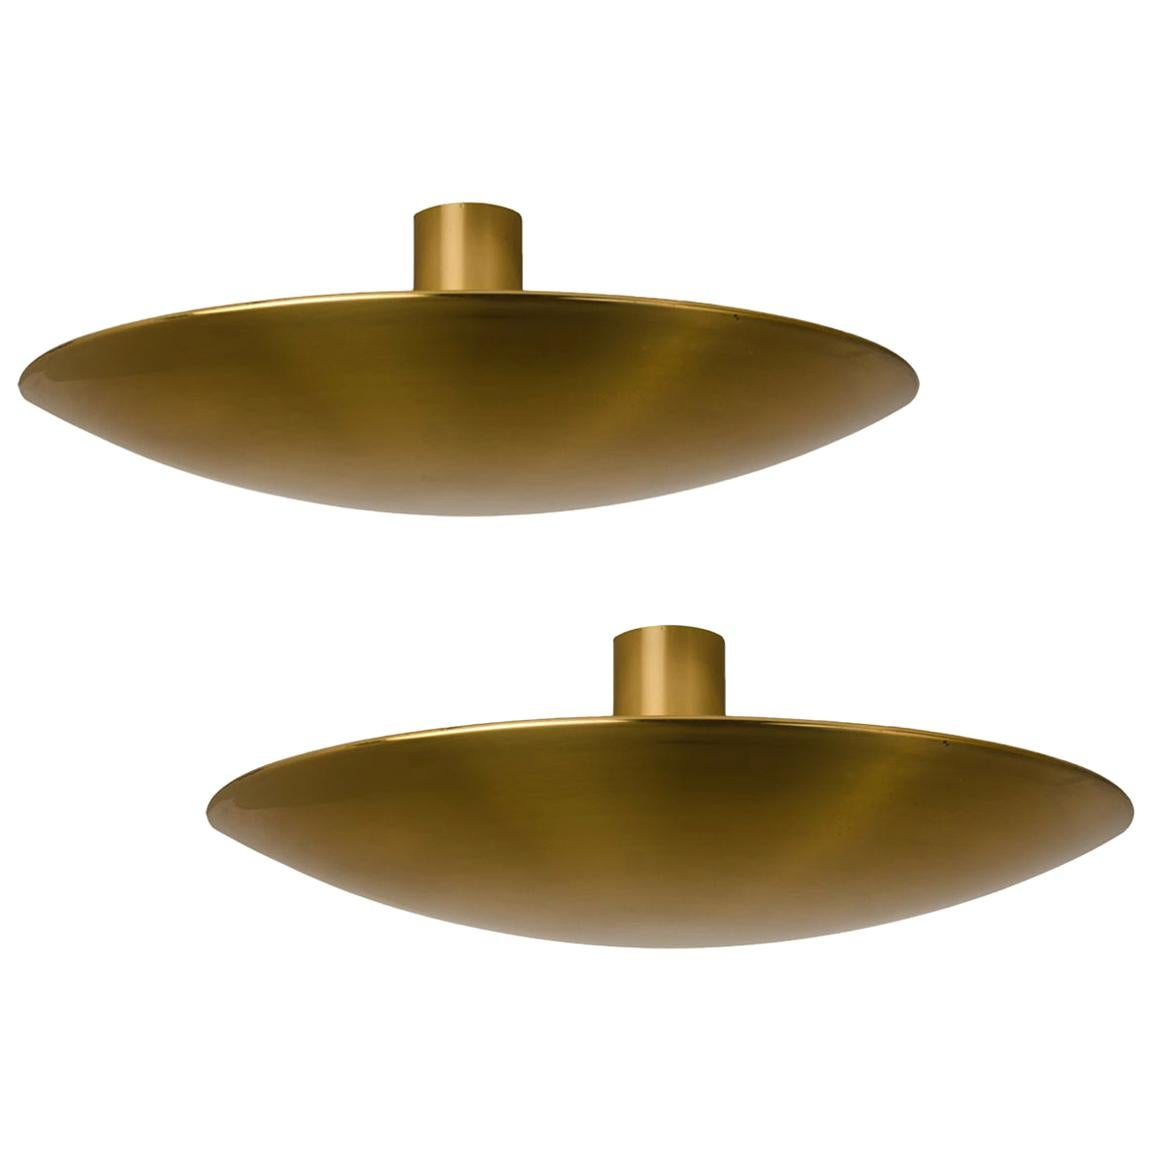 1 of the 2 Large Florian Schulz Brass Flushmount Ceiling /Wall Lights, 1970